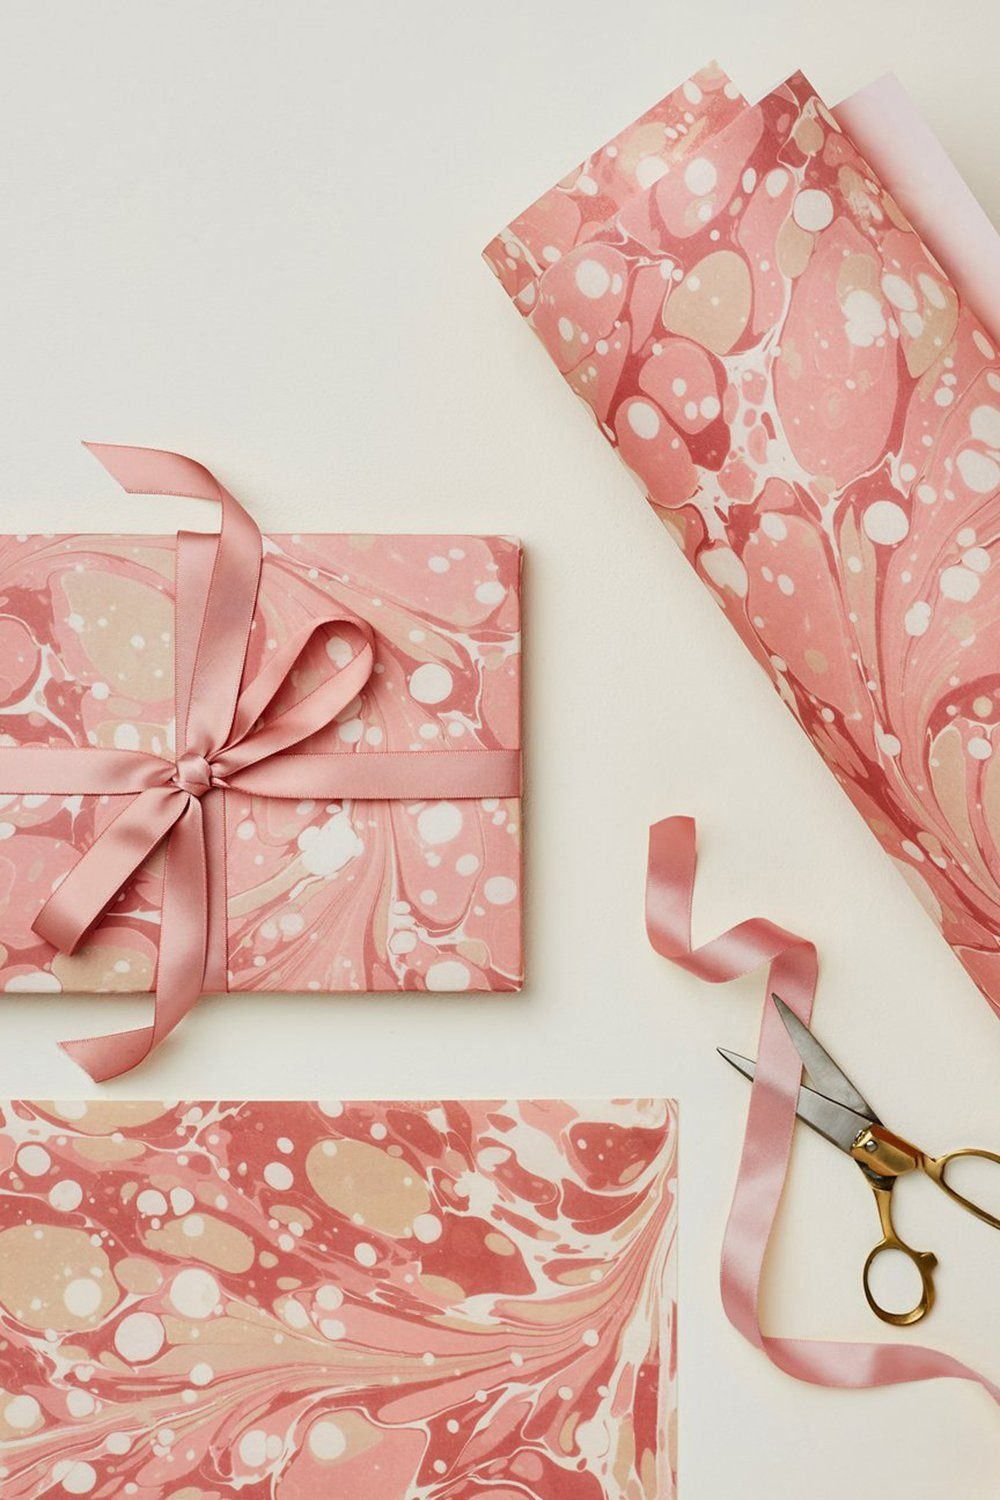 Wanderlust Paper - Gift Wrap Gifts & Stationery Wanderlust Paper Pink Marble